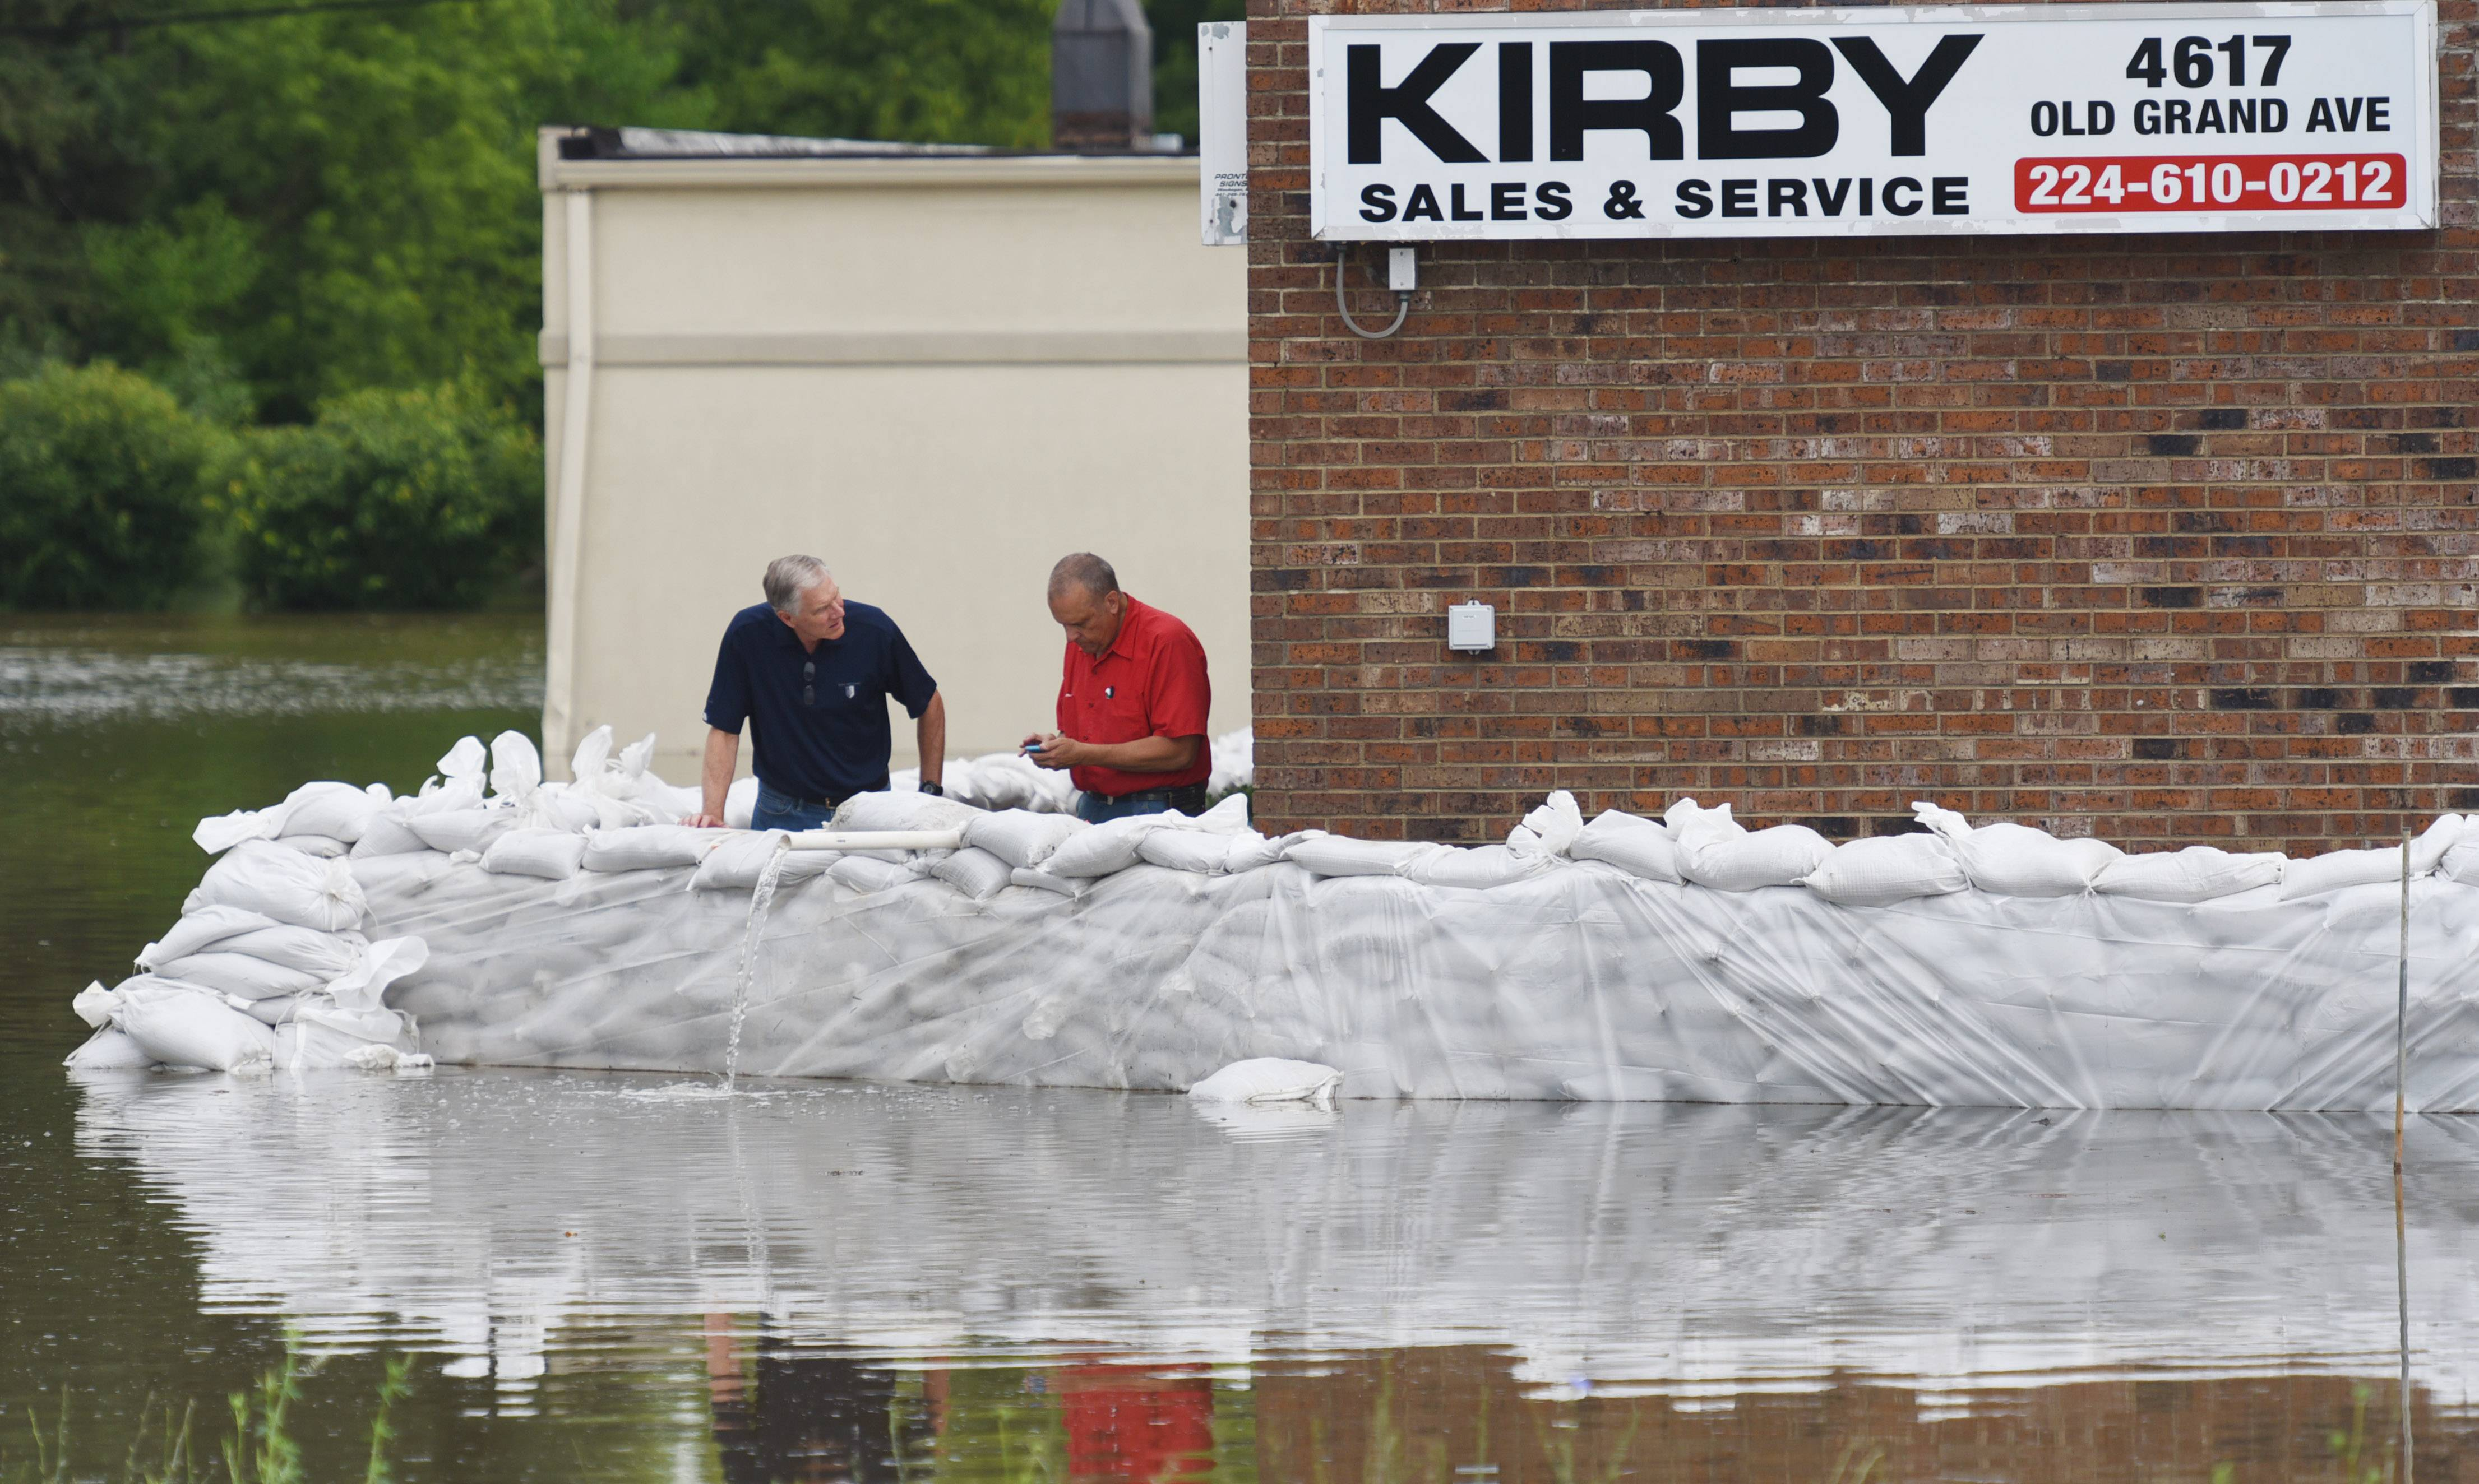 Sandbags protect businesses along Old Grand Avenuee in Gurnee Thursday.